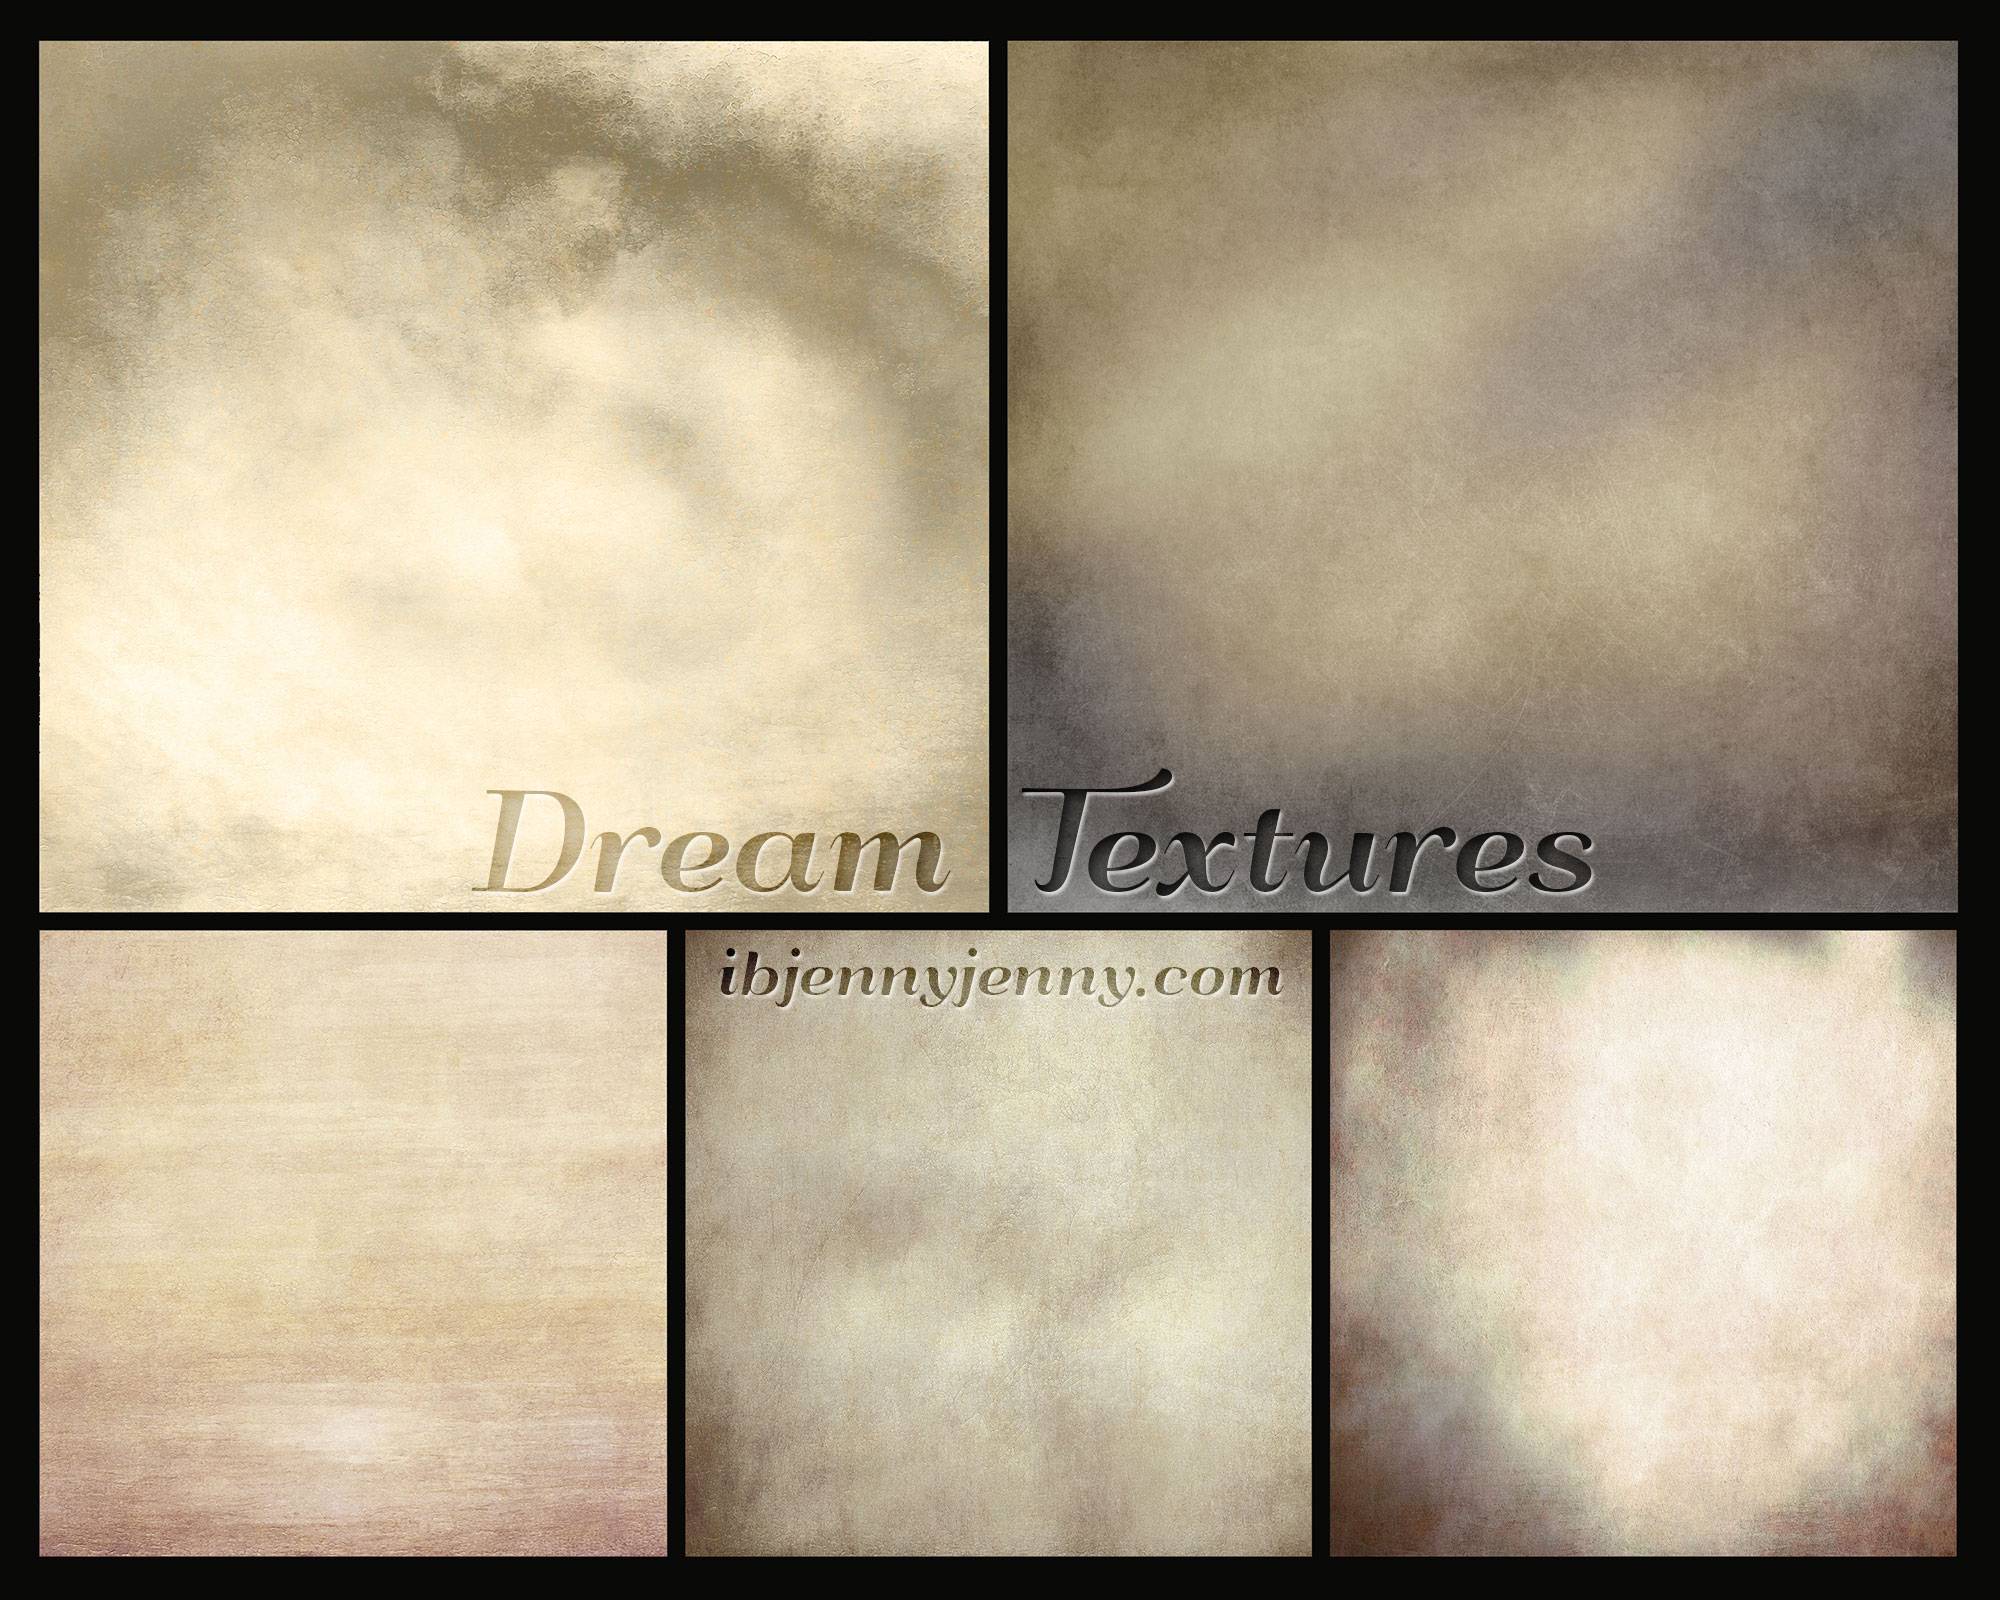 Free Dream Textures by ibjennyjenny